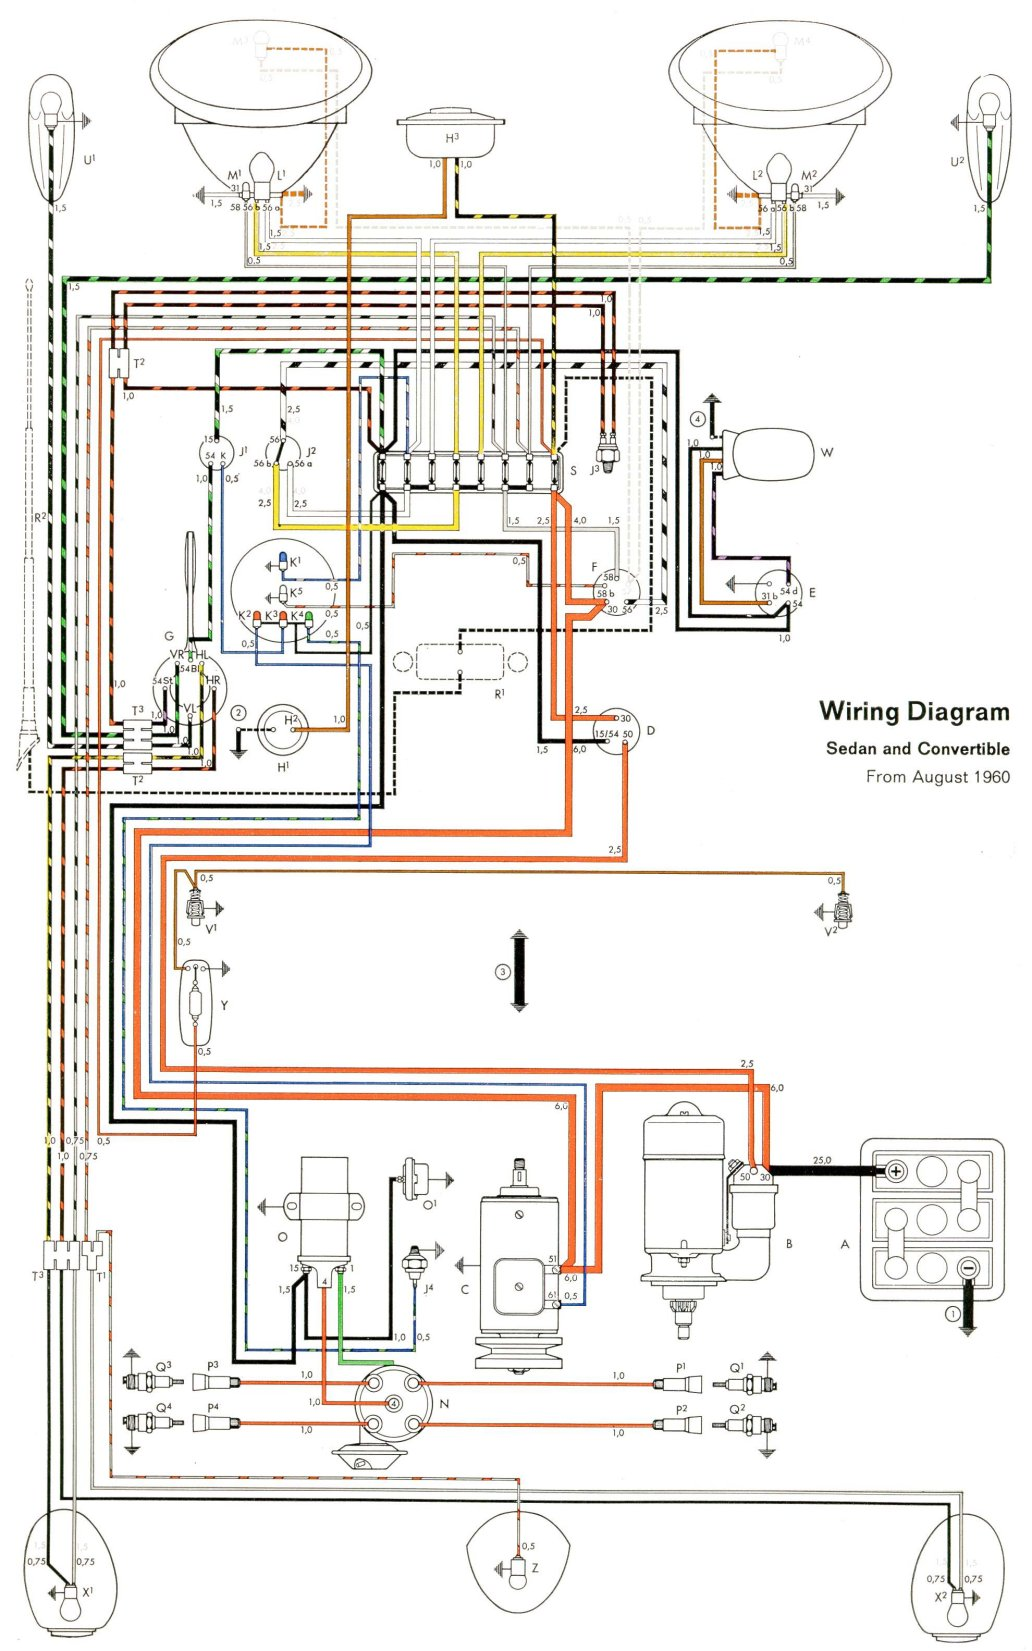 wiring diagram for 1969 vw beetle detailed schematics diagram rh  jppastryarts com 1979 vw bus wiring harness VW Wiring Harness Diagram